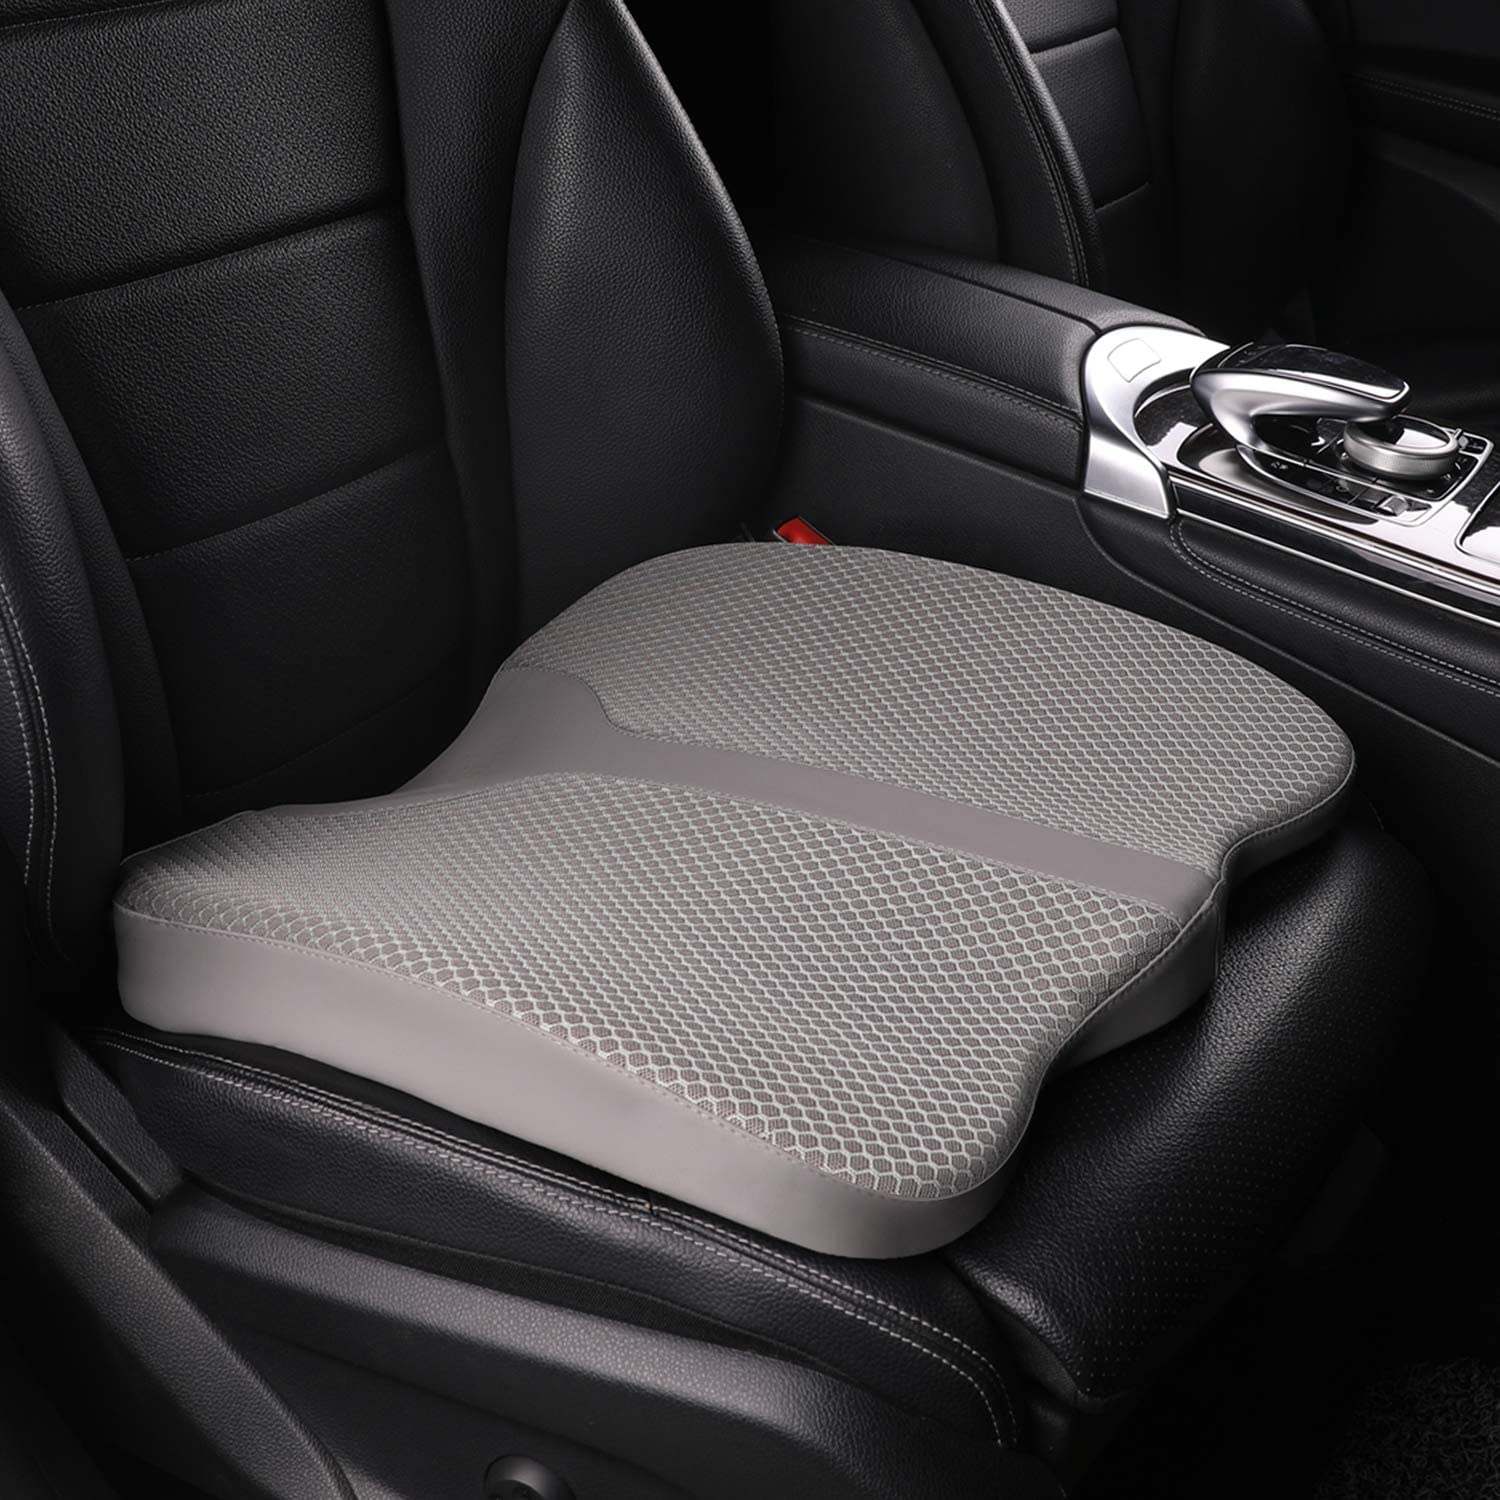 larrous car memory foam heightening seat cushion tailbone coccyx and lower back pain relief cushion for office chair wheelchair and more gray